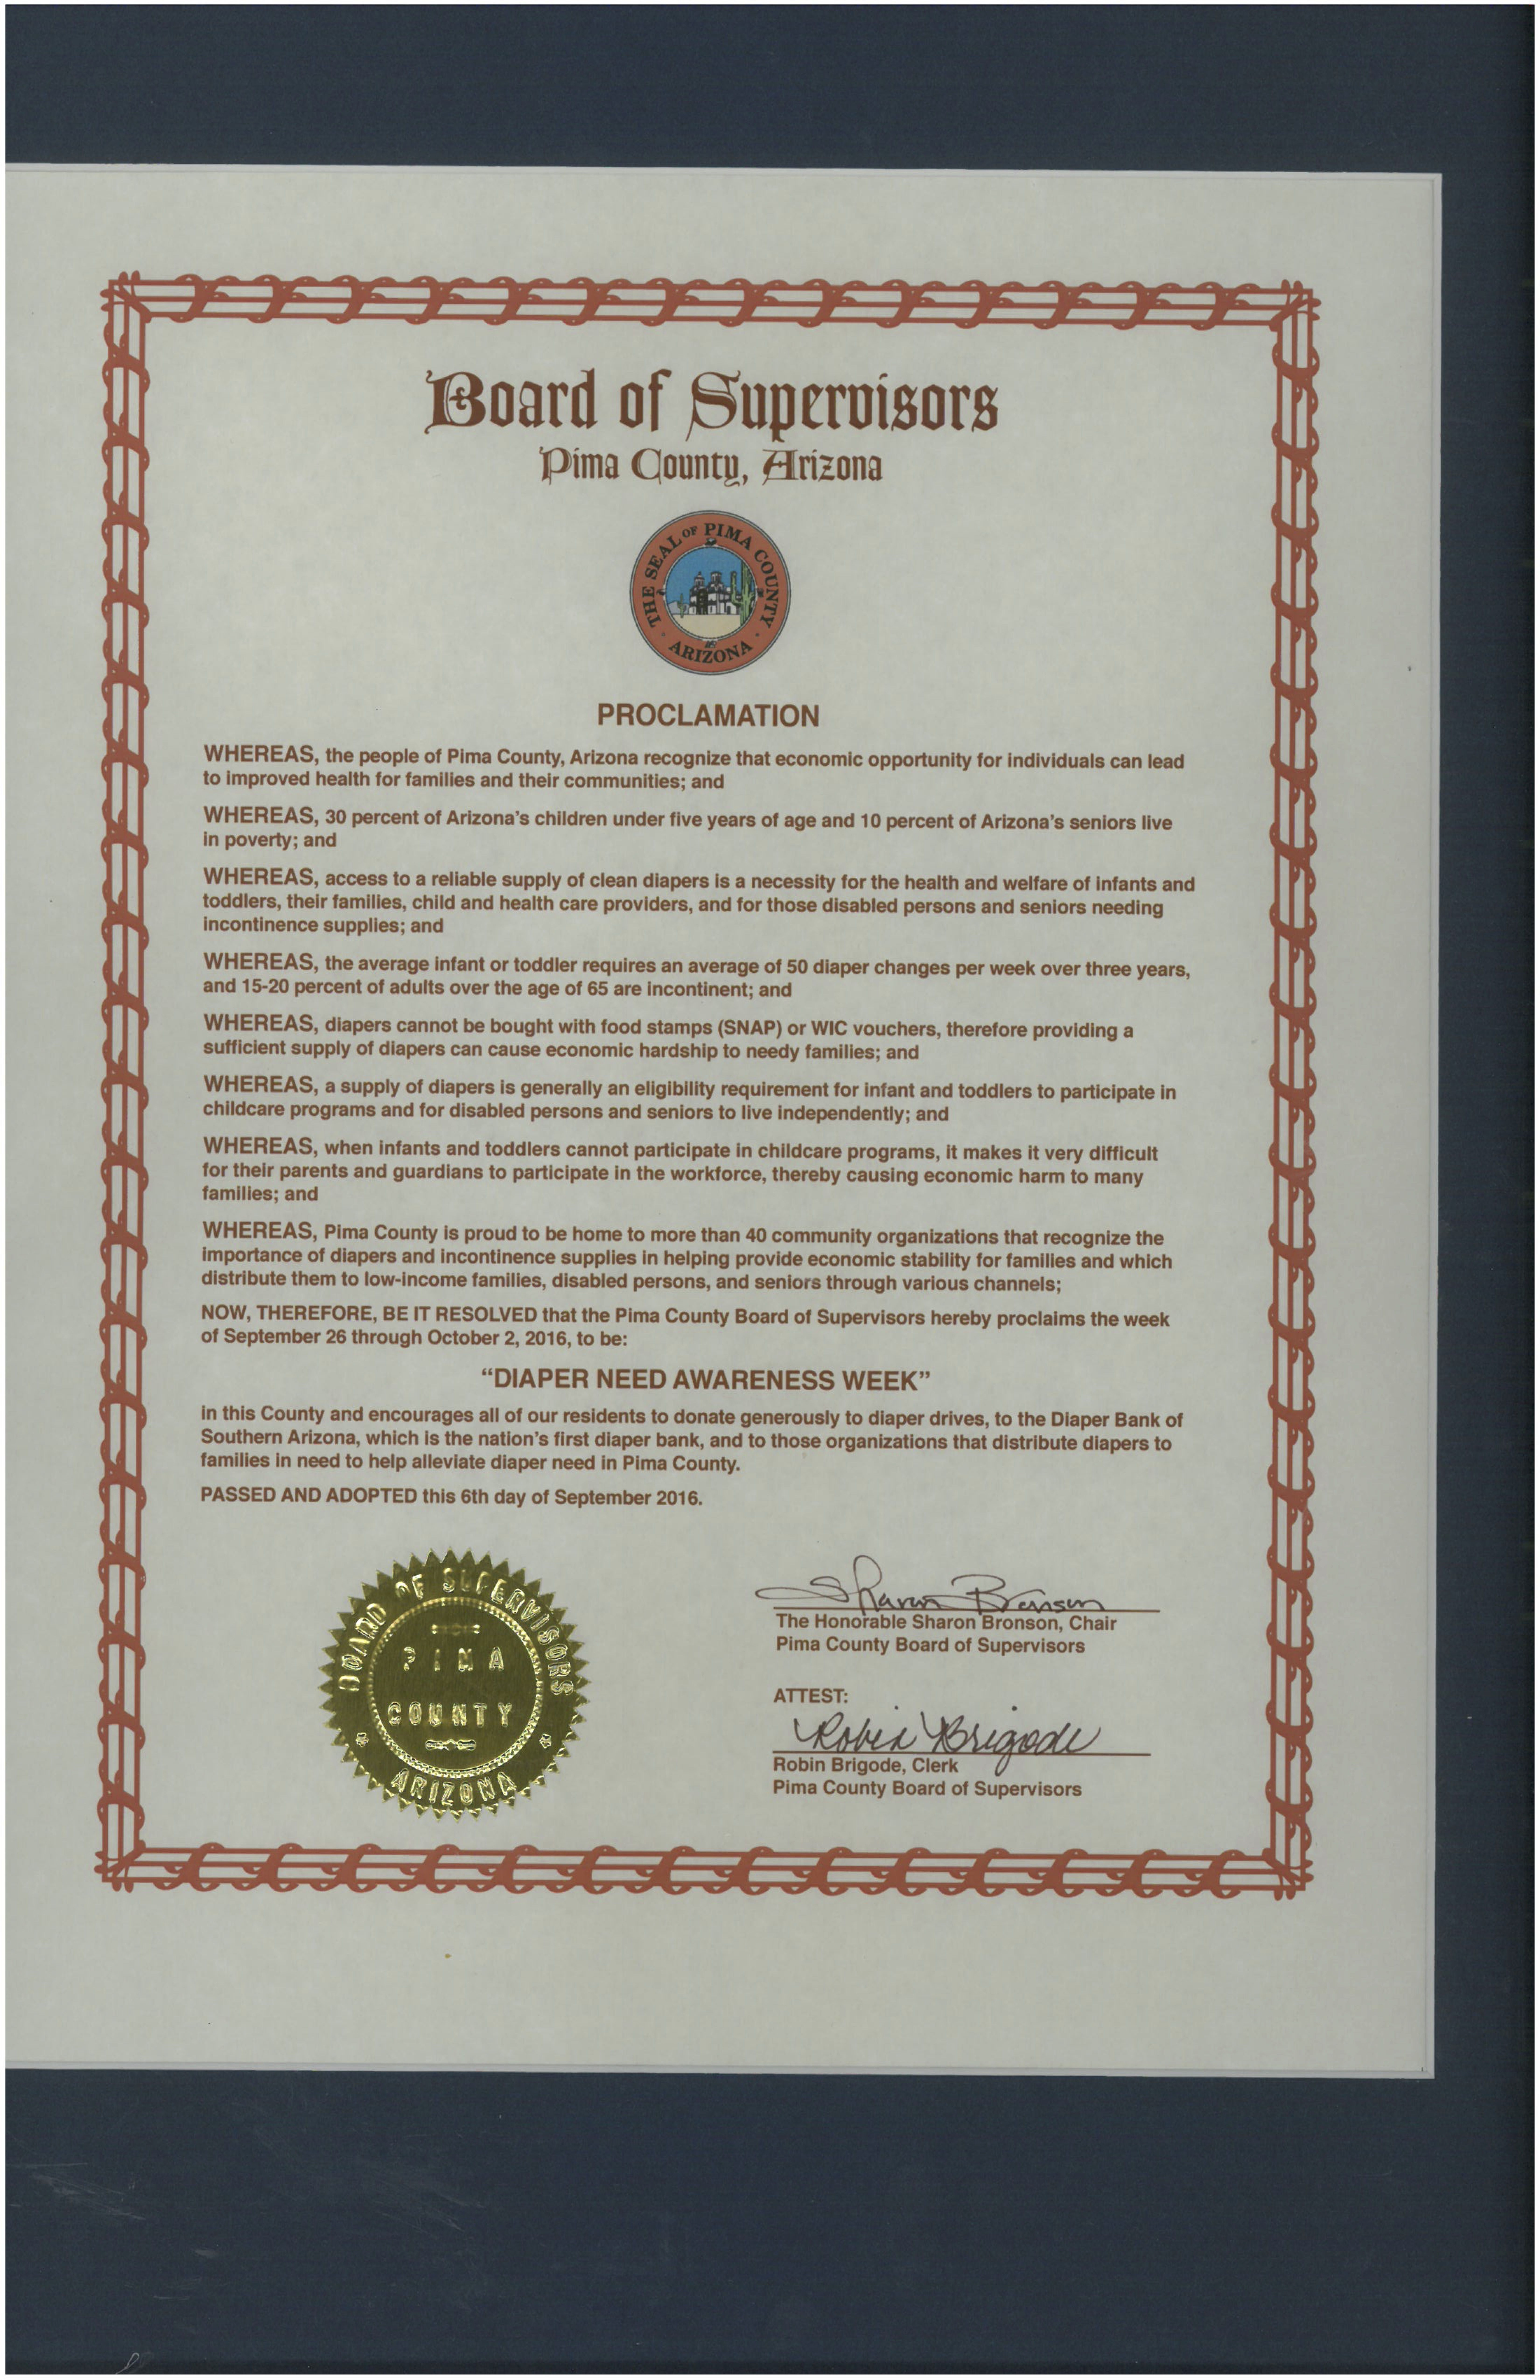 PIMA COUNTY - Board of Supervisors proclamation recognizing Diaper Need Awareness Week (Sep. 26 - Oct. 2, 2016) #diaperneed diaperneed.org